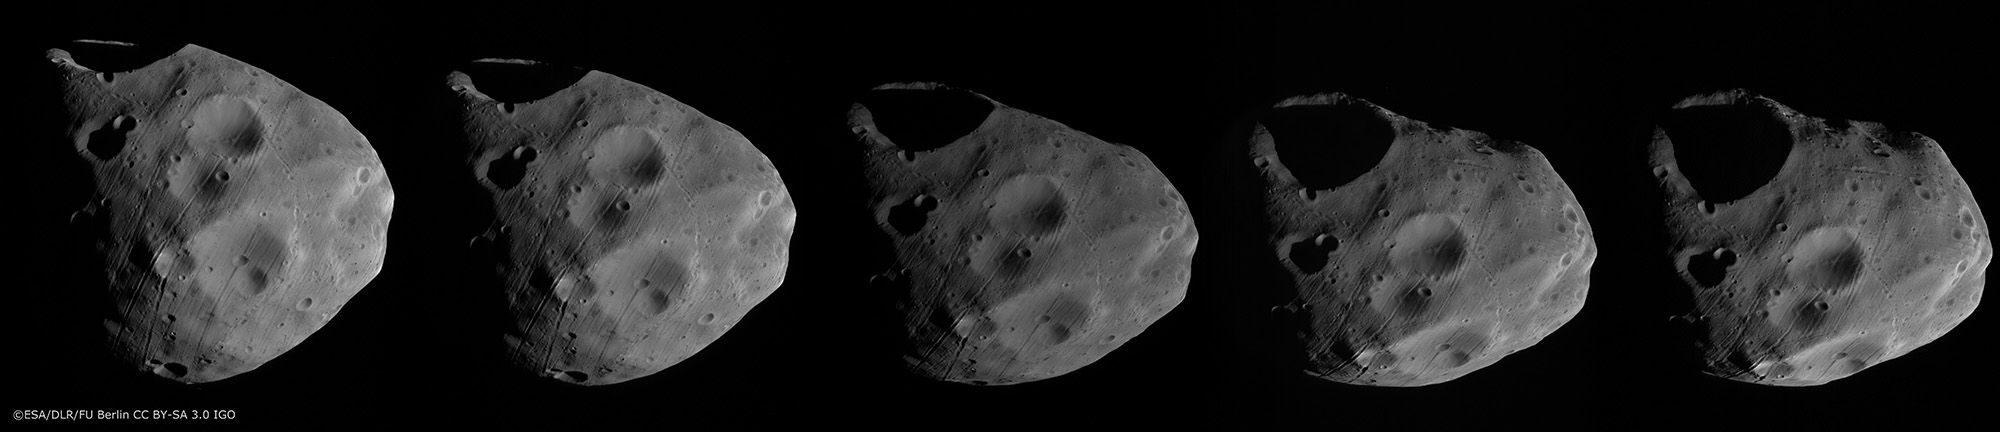 Phobos_surface_sequence